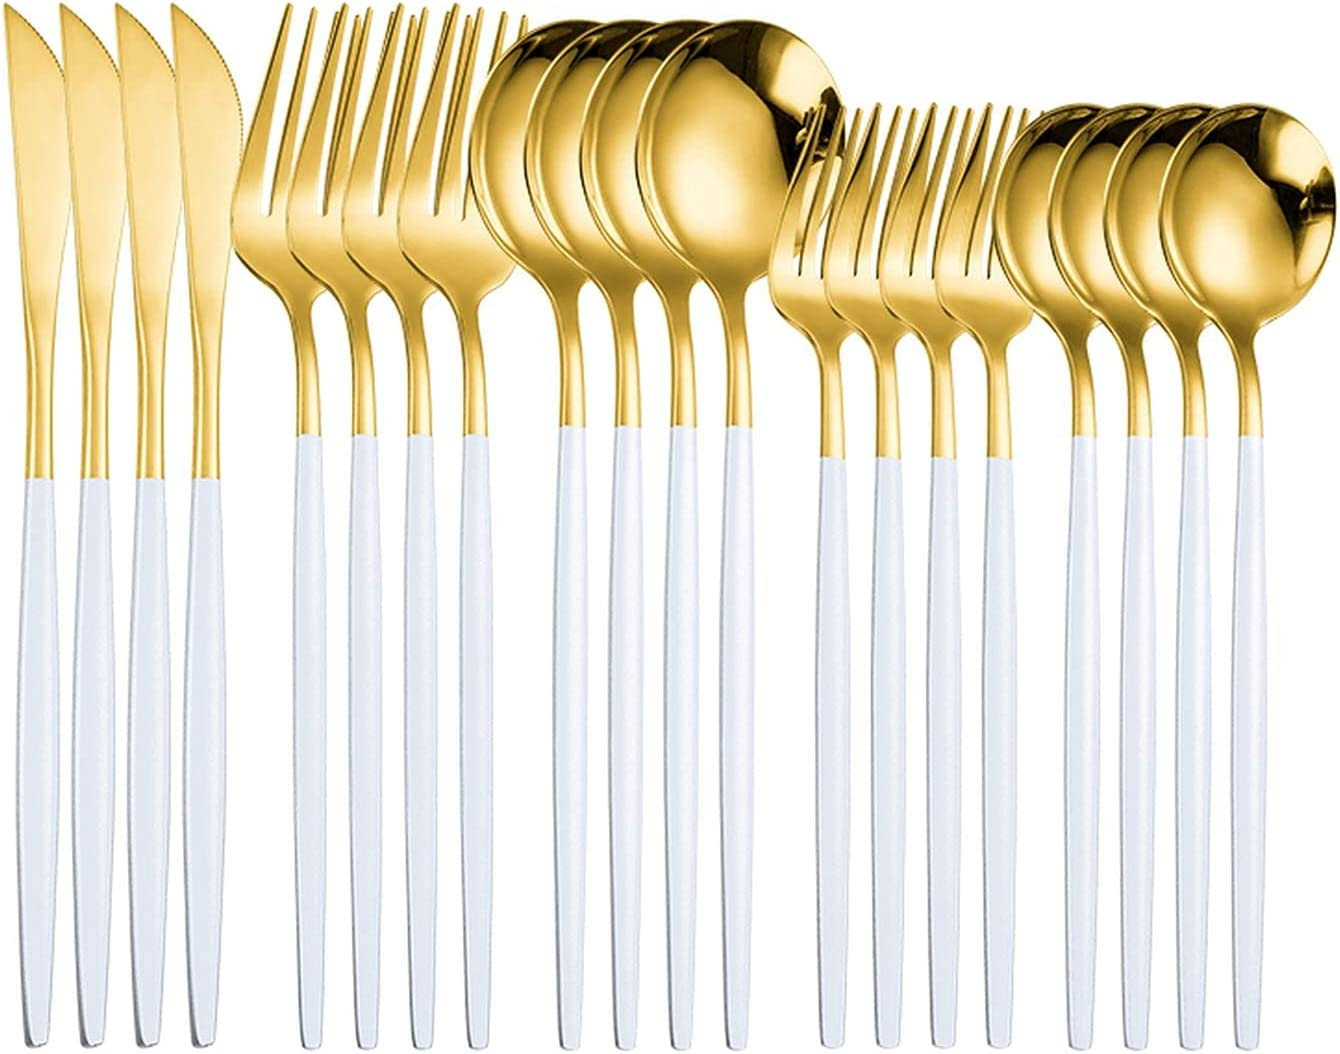 Silverware Set Max 54% OFF Product 20-Piece Tableware